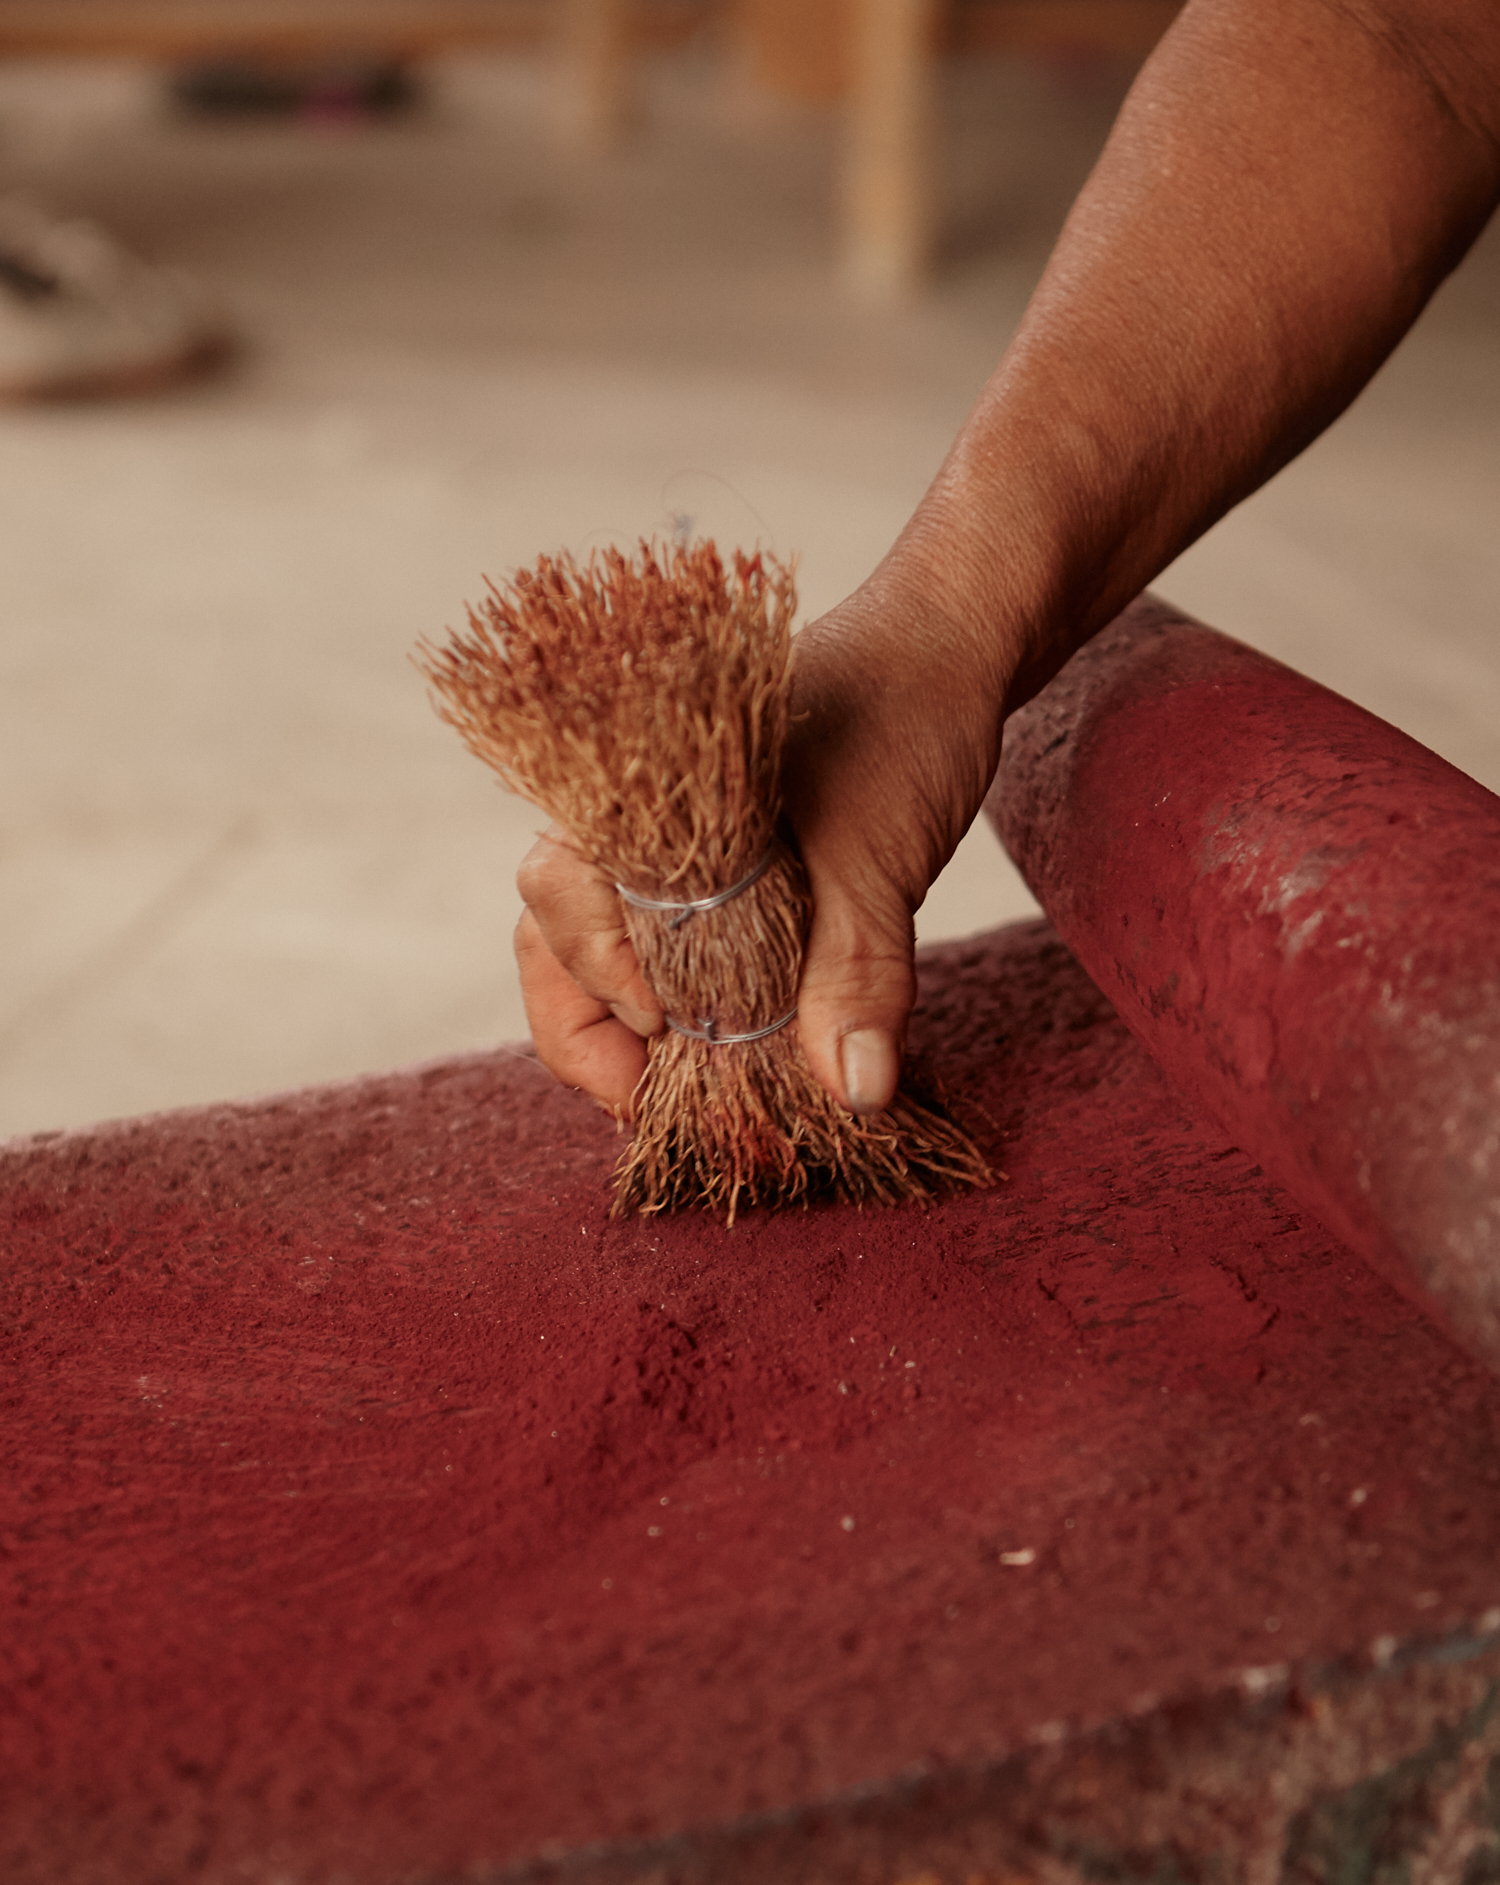 A rhythmic process of grind, brush, grind until the cochineal is a fine enough powder for the dye bath